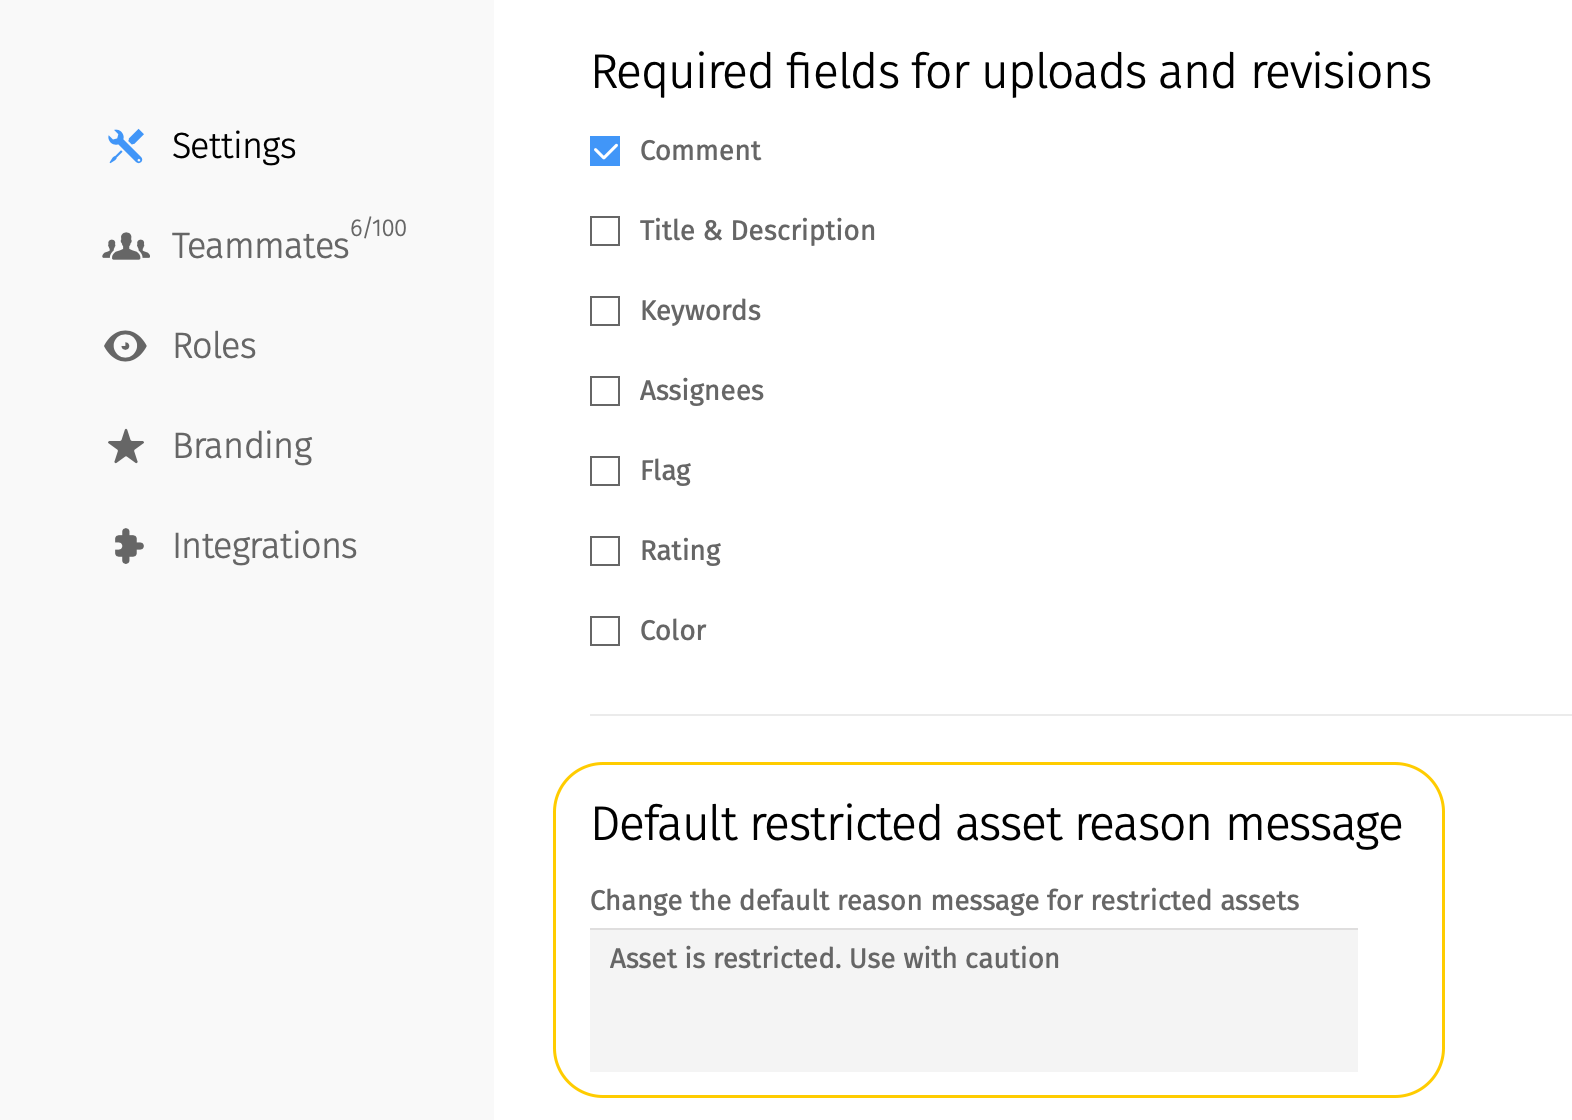 Default restricted asset reason message